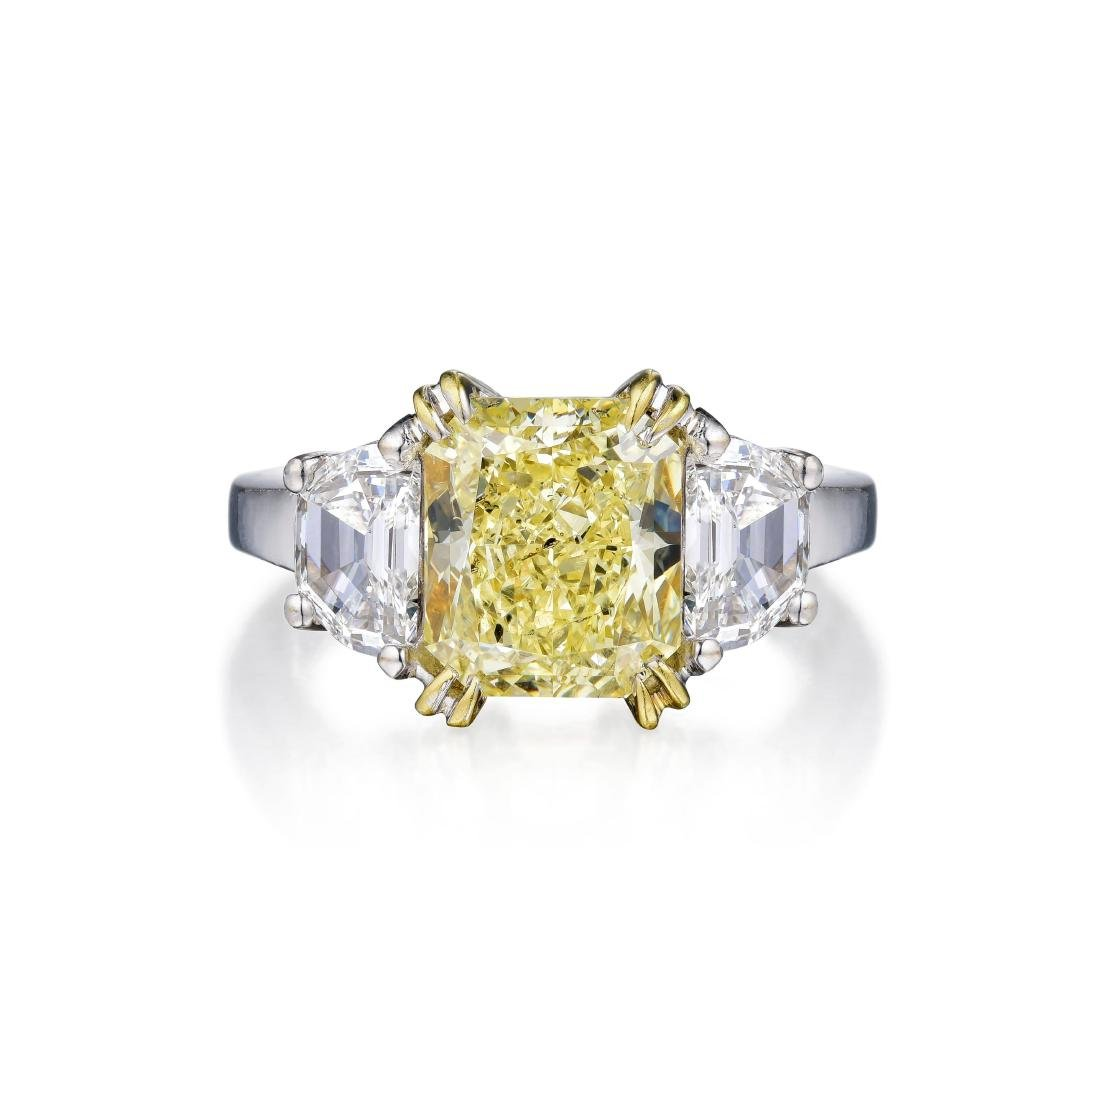 A 2.64-Carat Fancy Light Yellow Diamond Ring